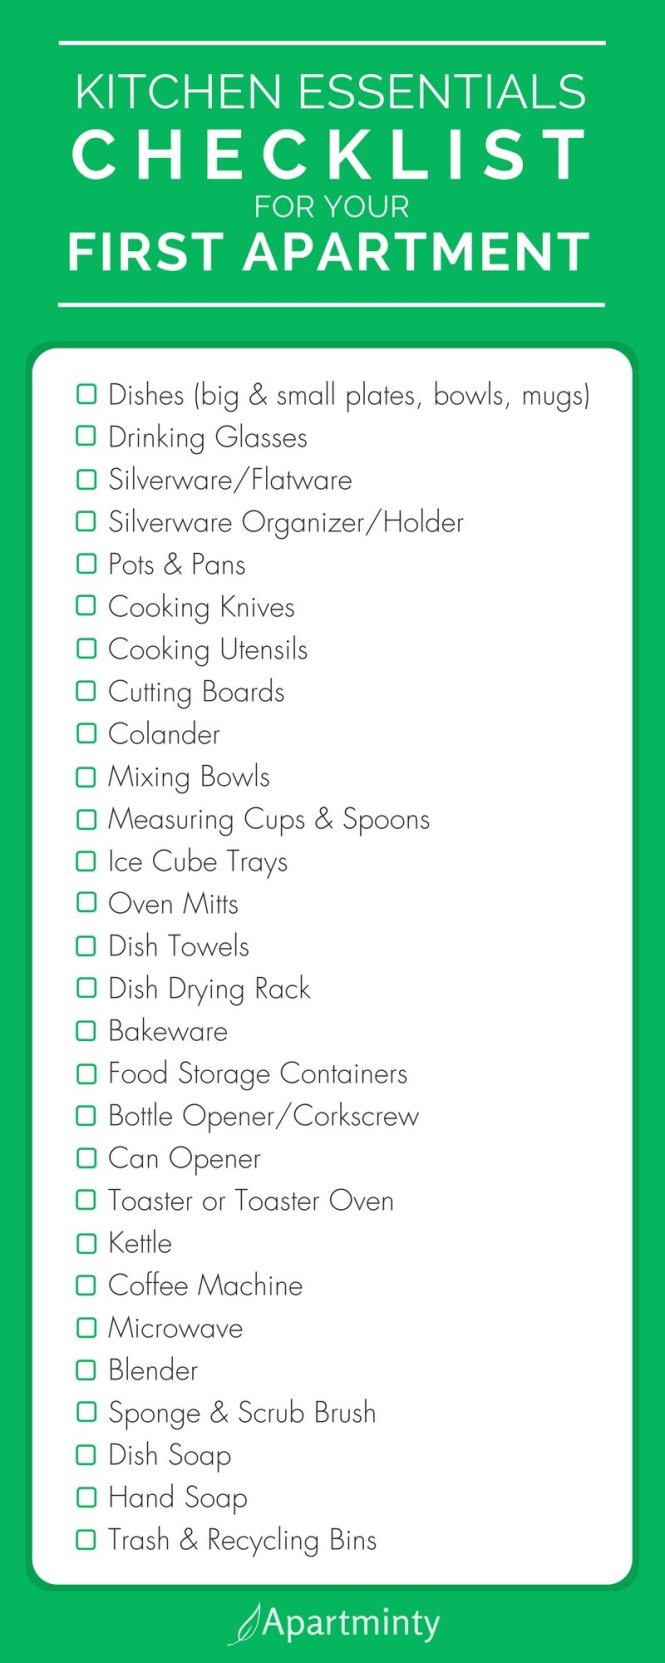 Apartminty Kitchen Essentials Checklist For Your First Apartment